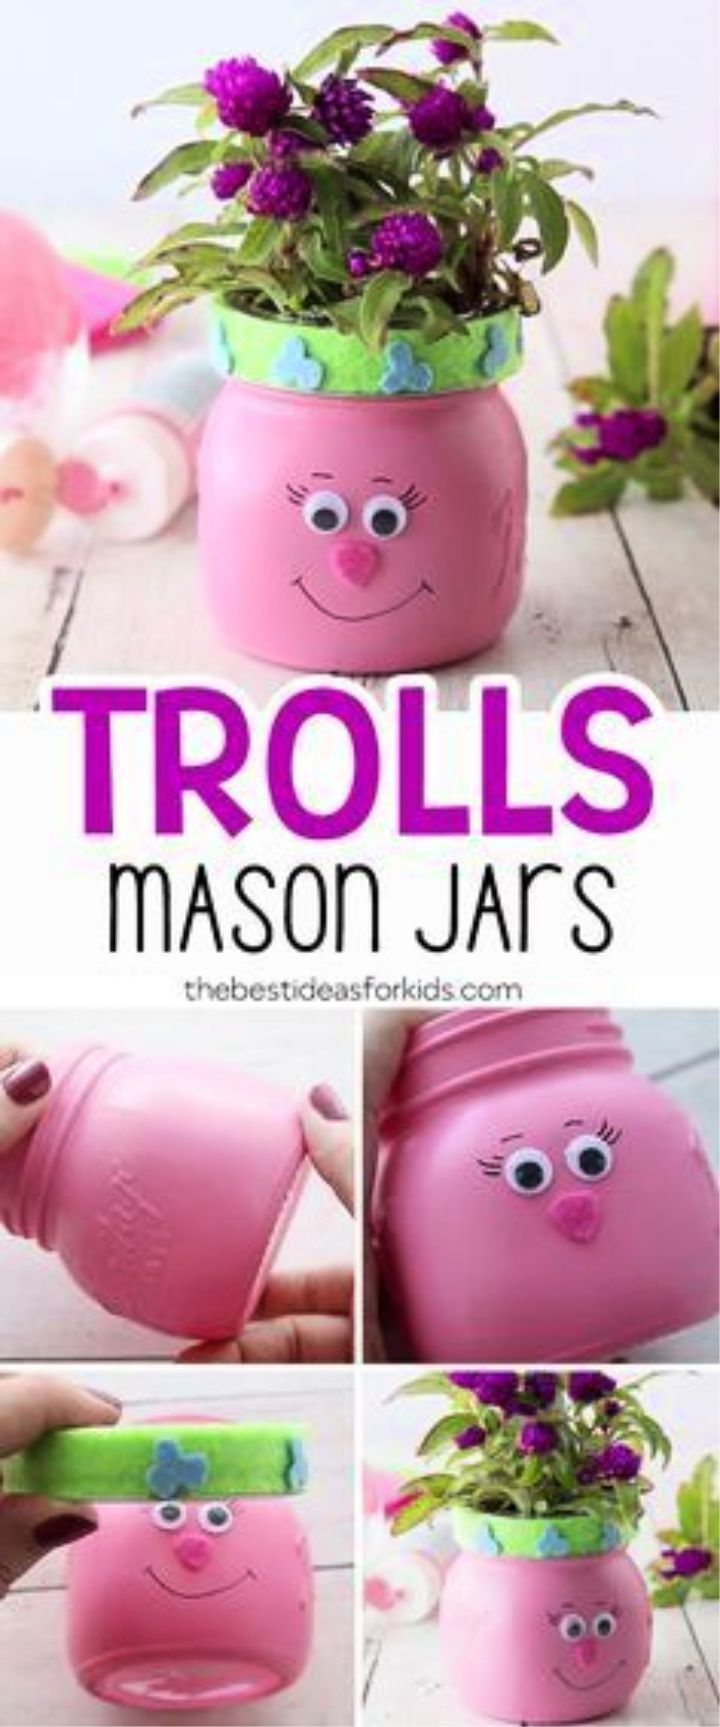 DIY Adorable Trolls Mason Jars